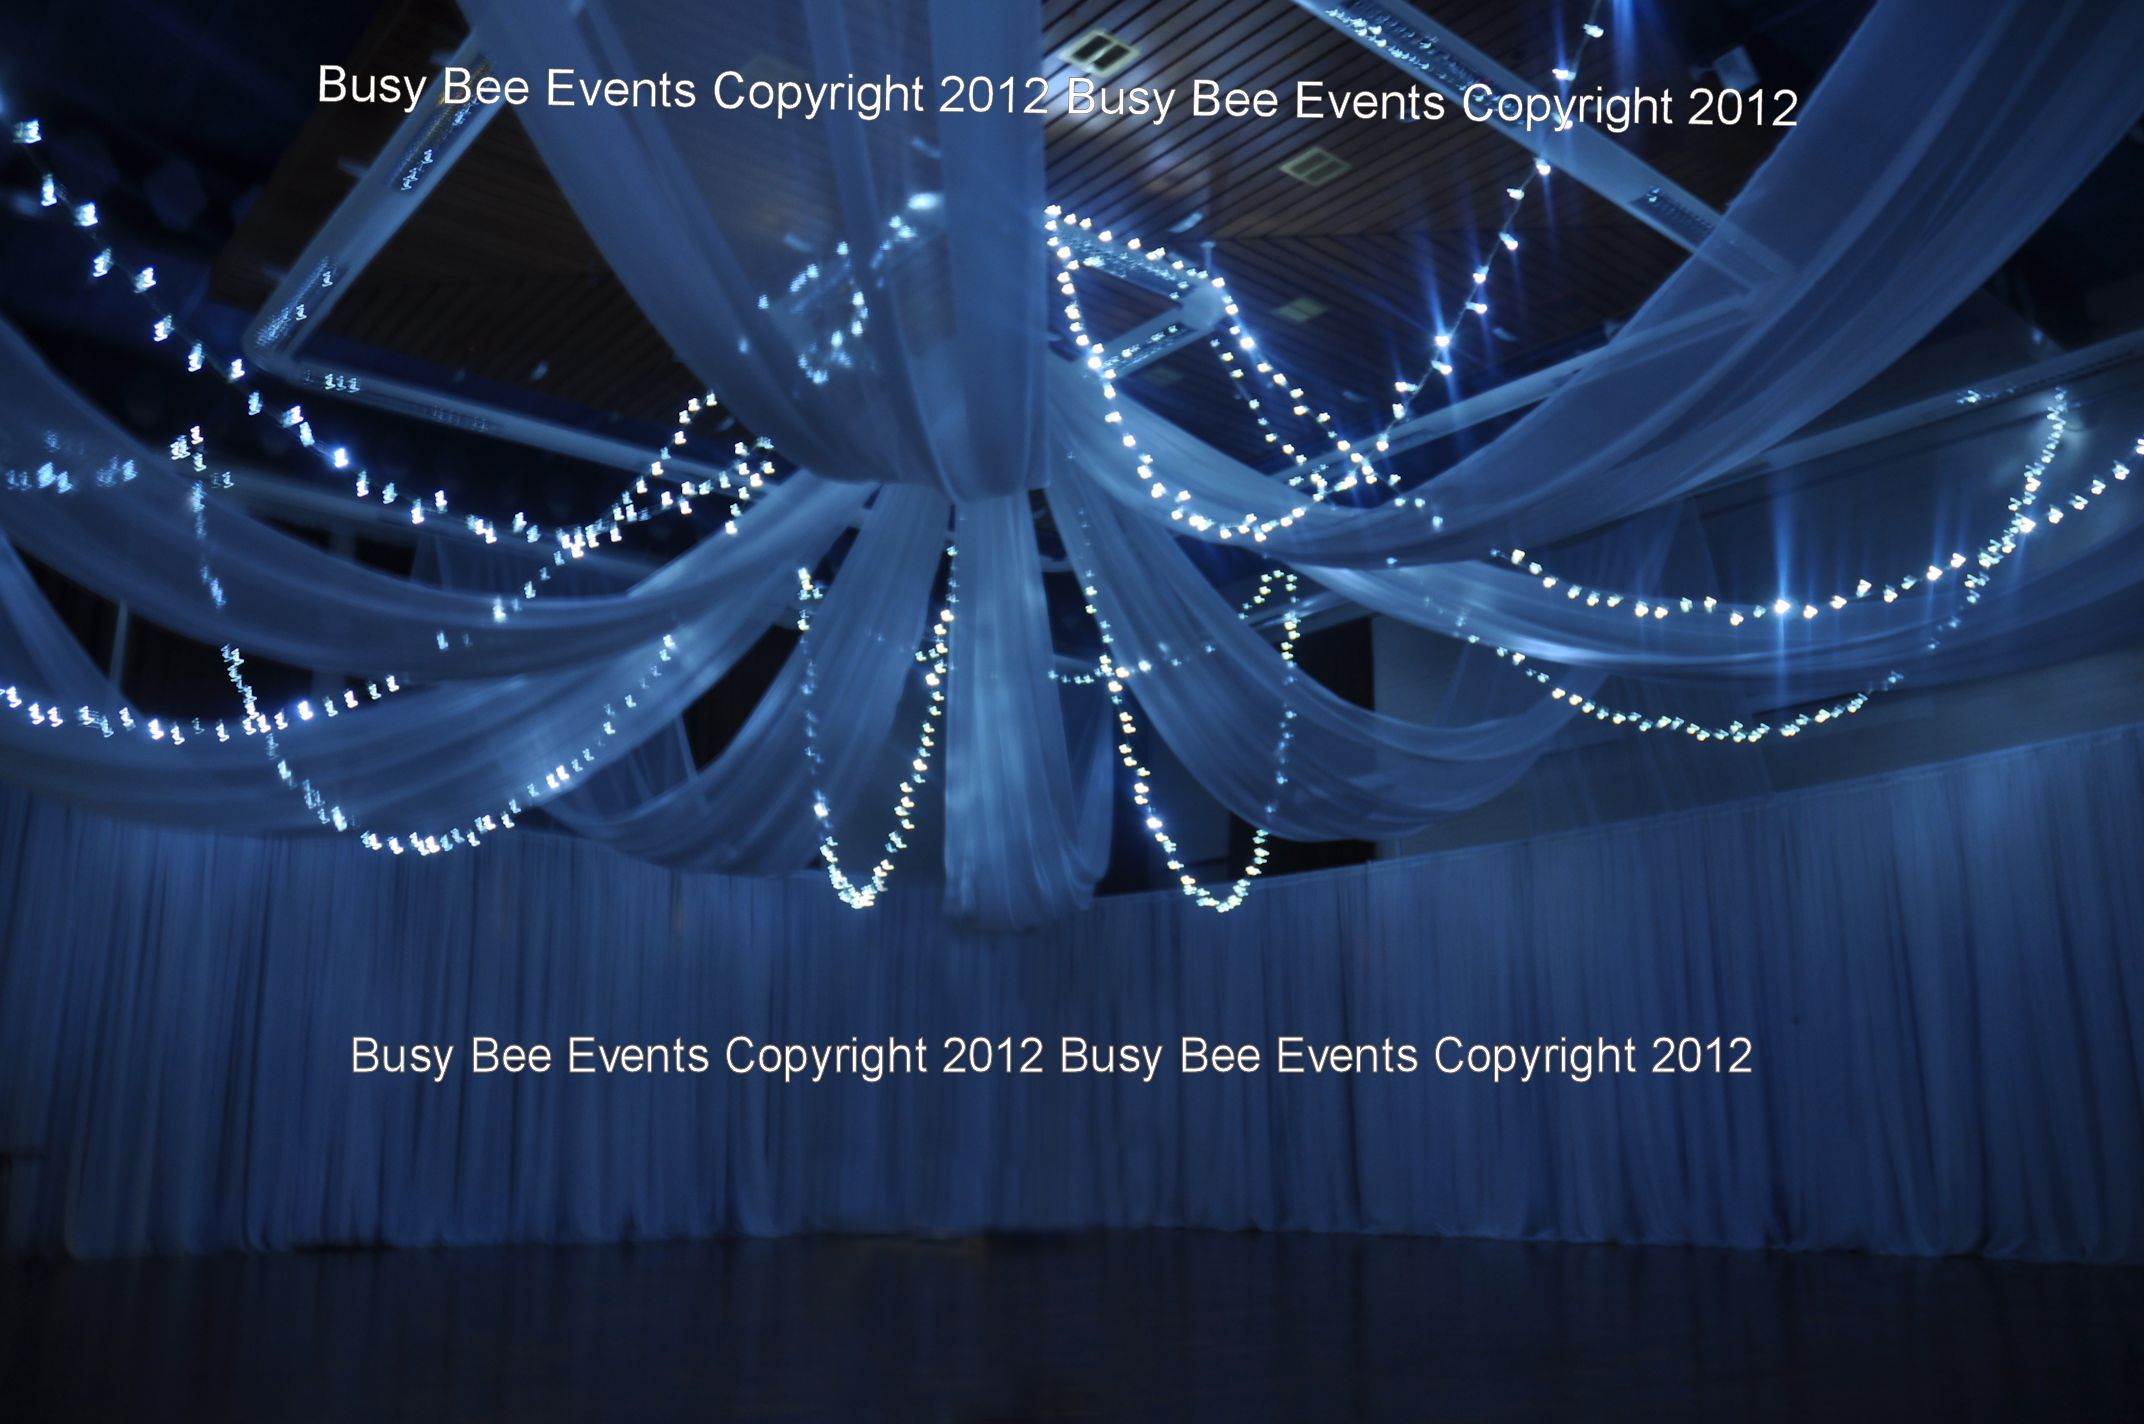 detail lighting to drape pin hang and floor were how purple image up ceiling lanterns we for events drapes